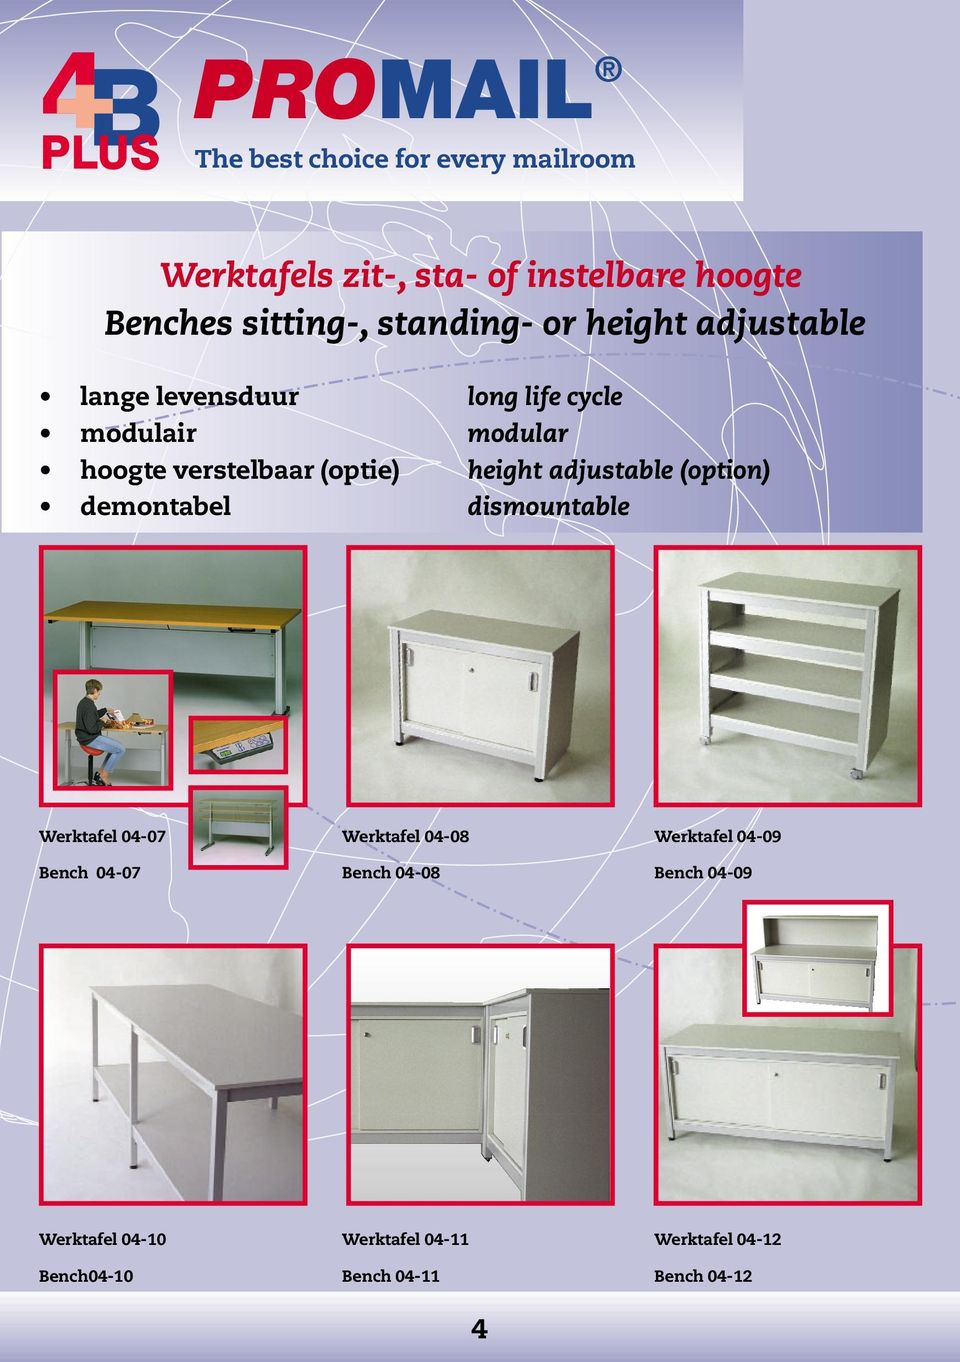 (option) demontabel dismountable Werktafel 04-07 Werktafel 04-08 Werktafel 04-09 Bench 04-07